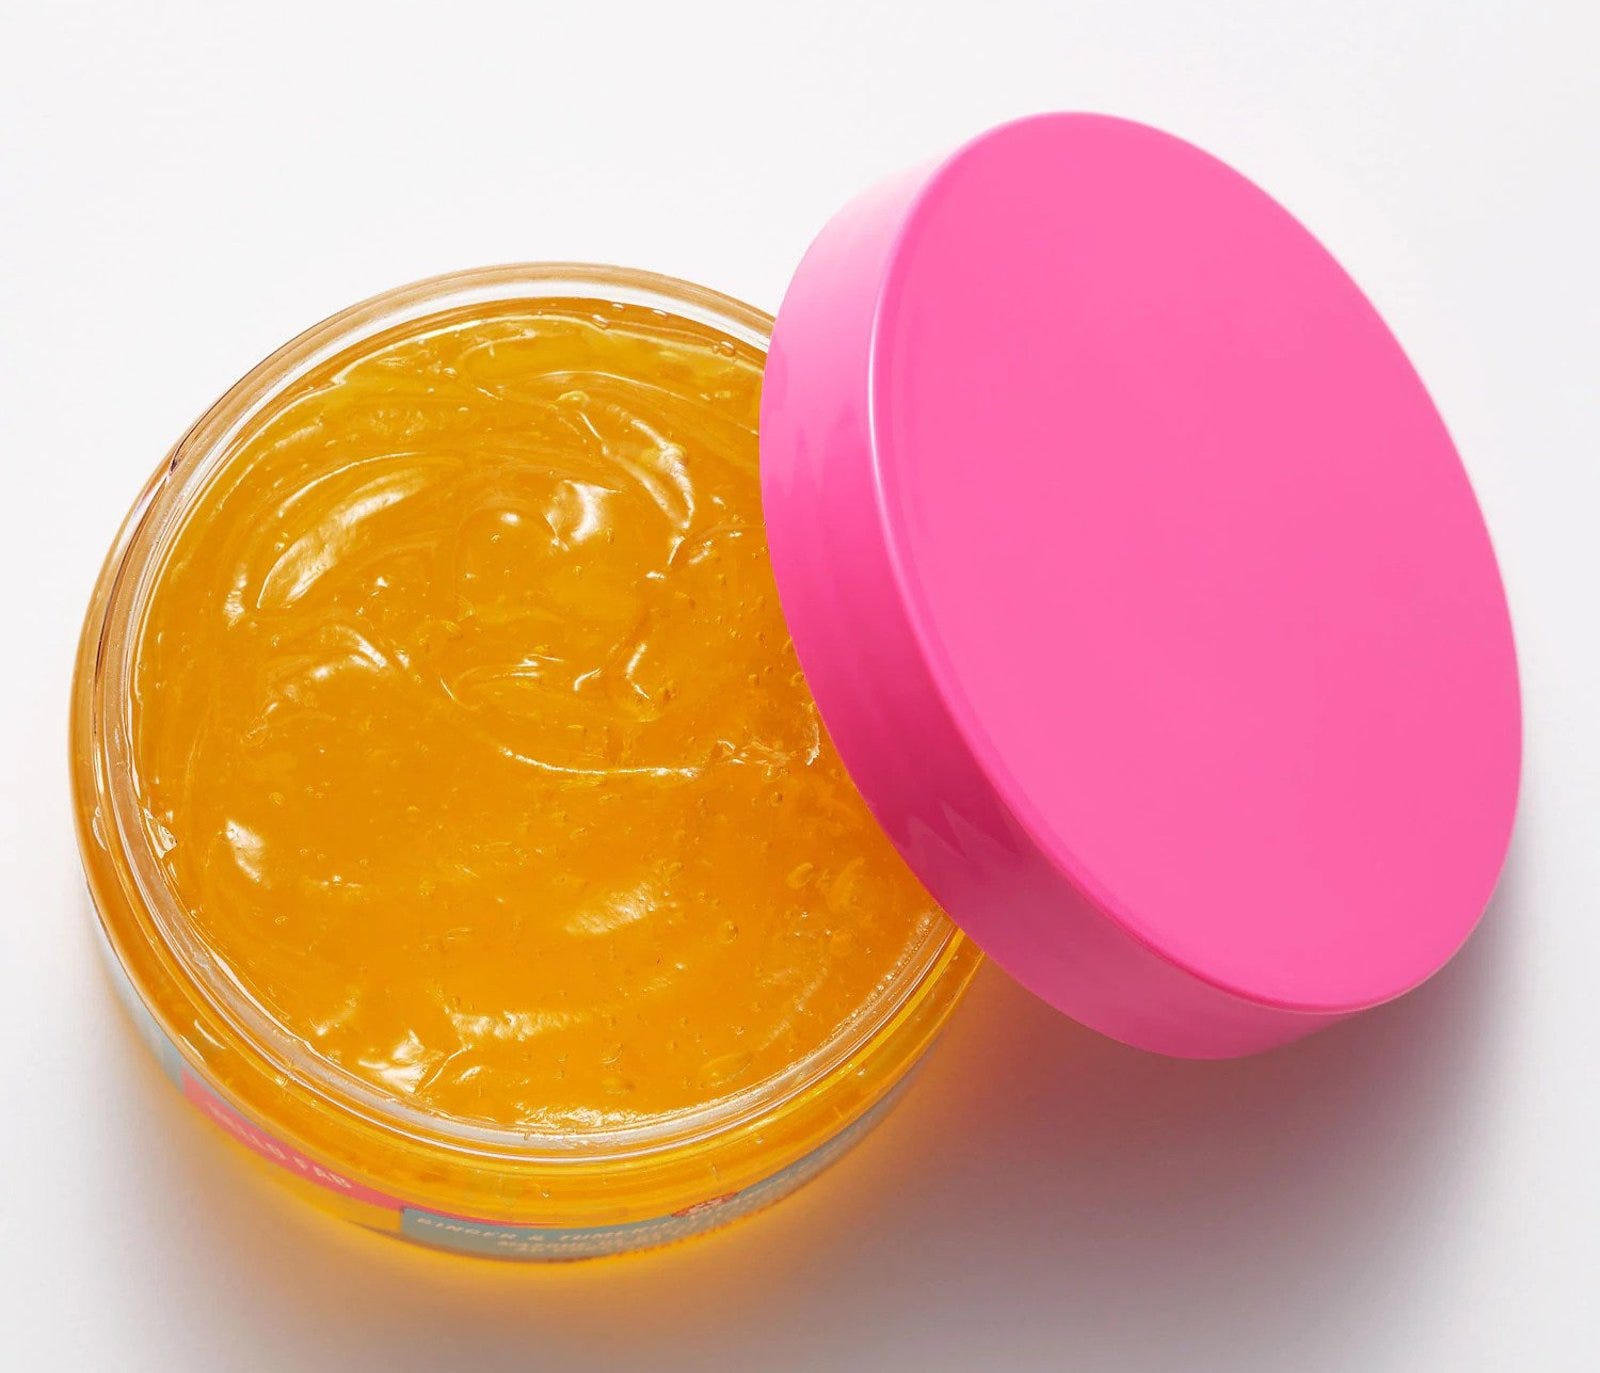 A round vial of an orange jelly substance, with a pink lid tilted half-off